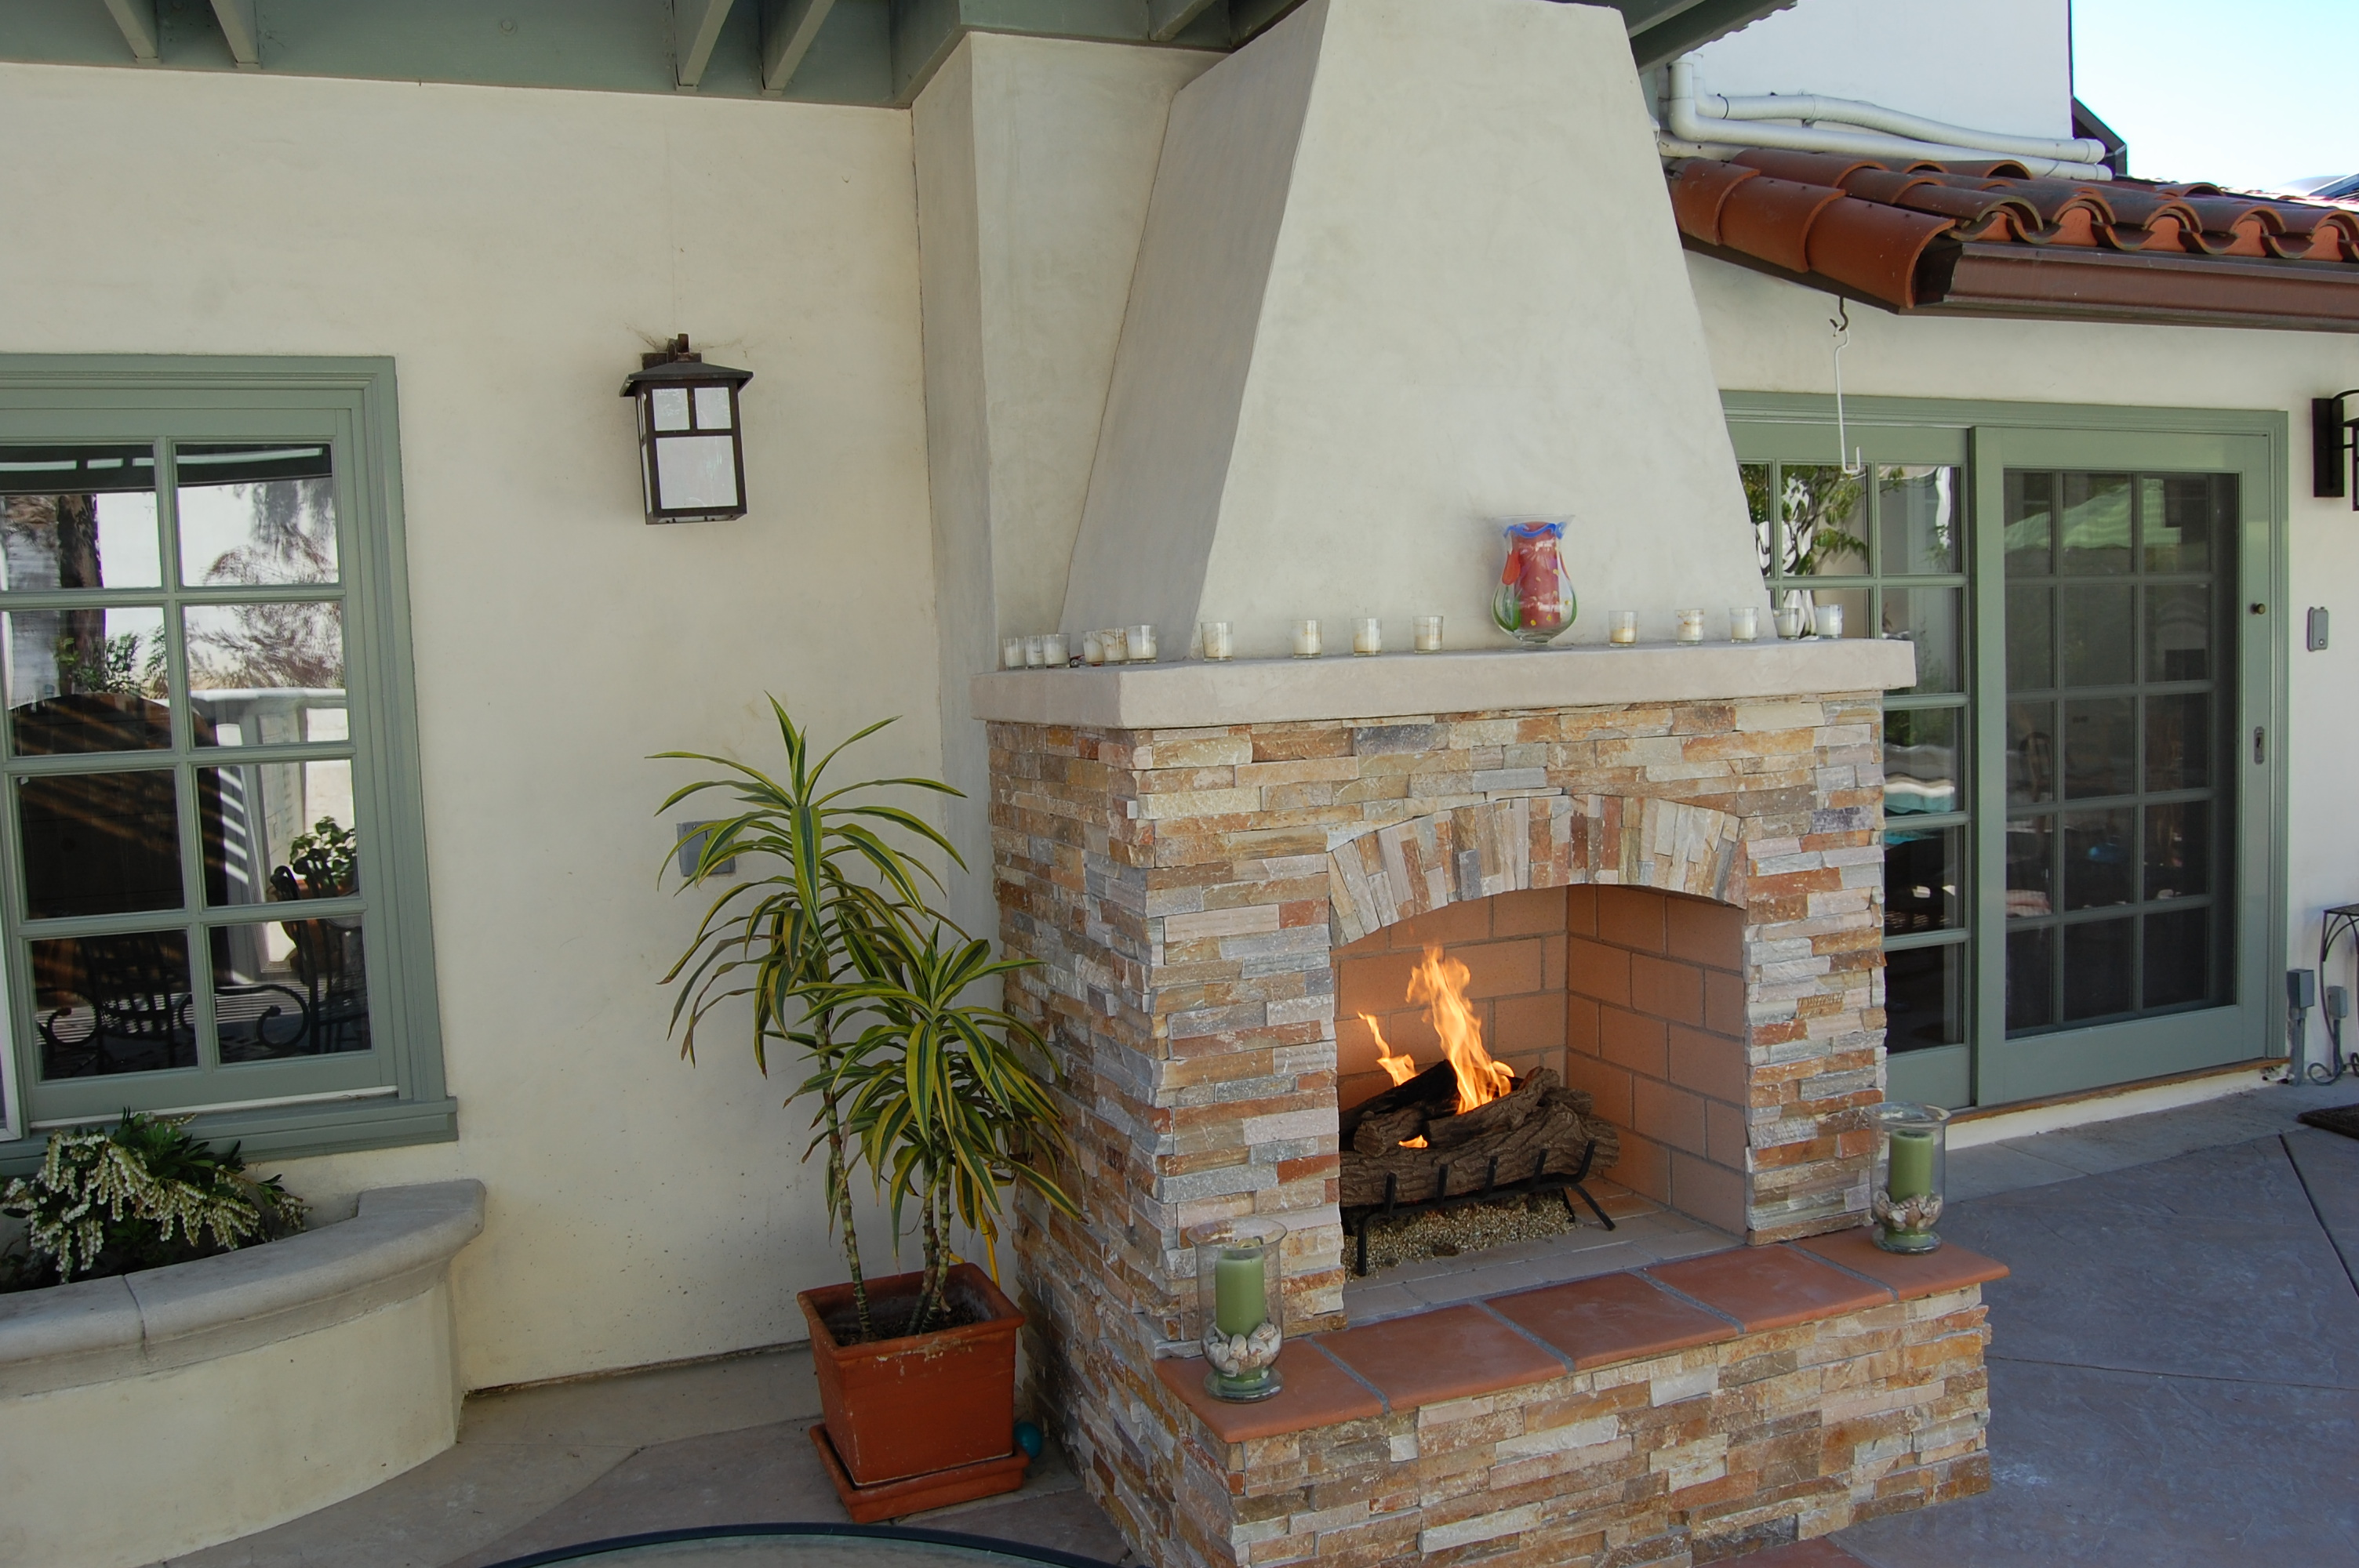 Custom Built Fireplace | Outdoor Fireplace Designs - Southern Cal Fire